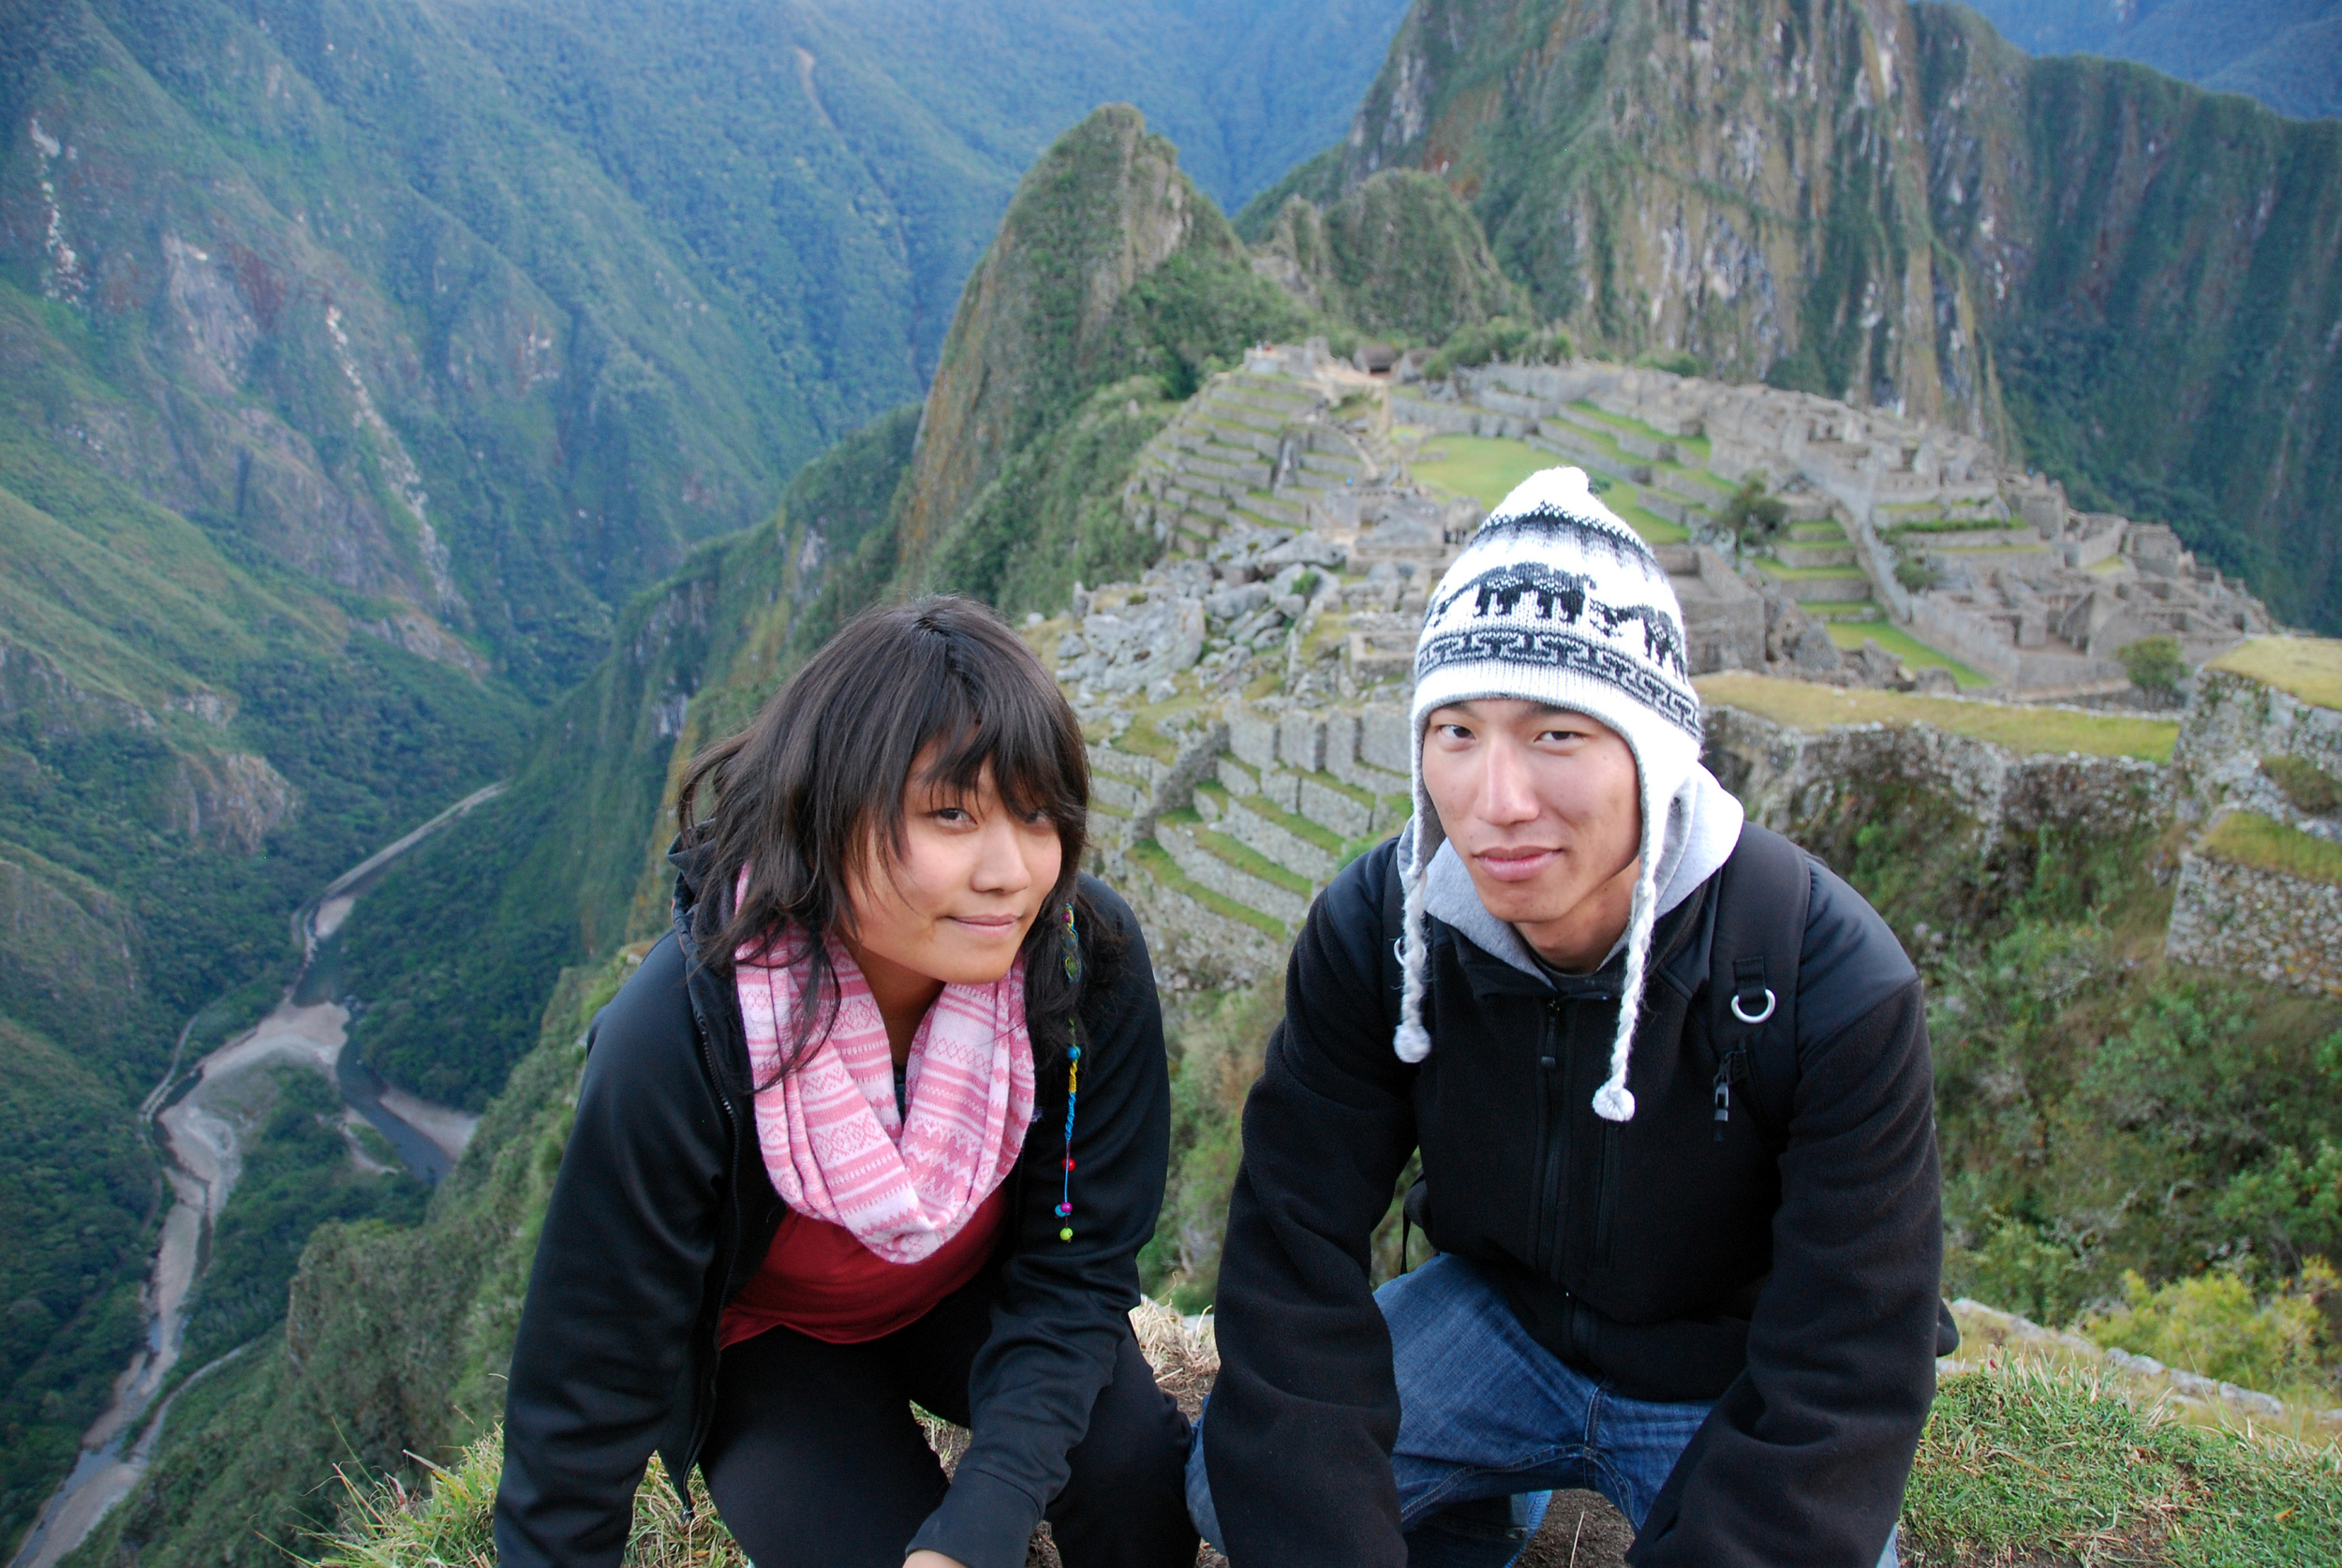 At the top of Machu Picchu